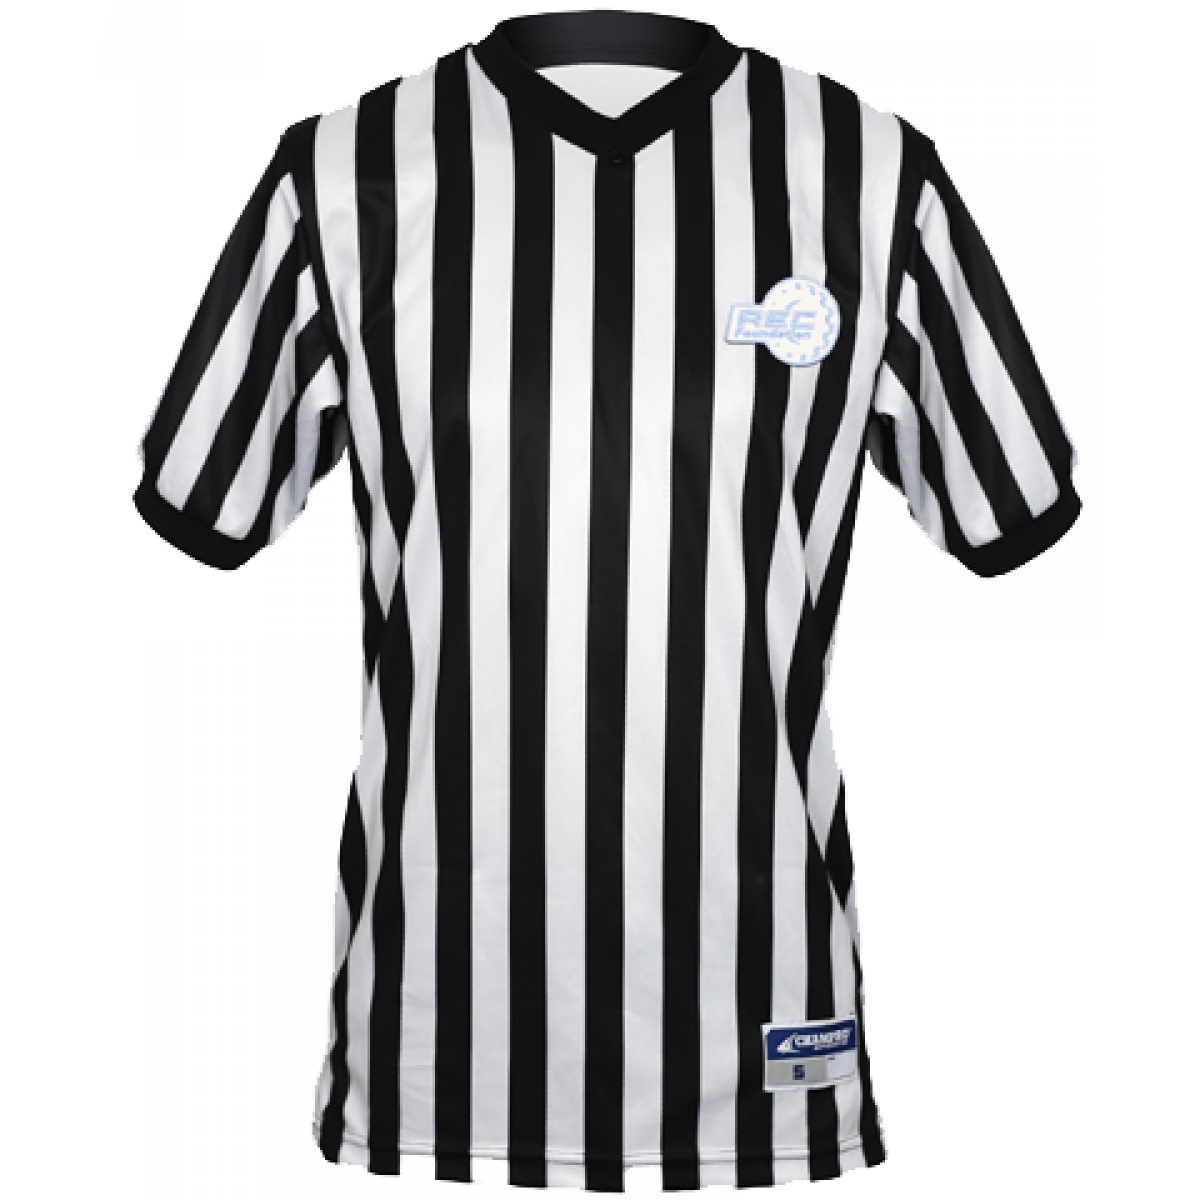 Referee T-Shirt V-neck     (Please select sizes and quantities)